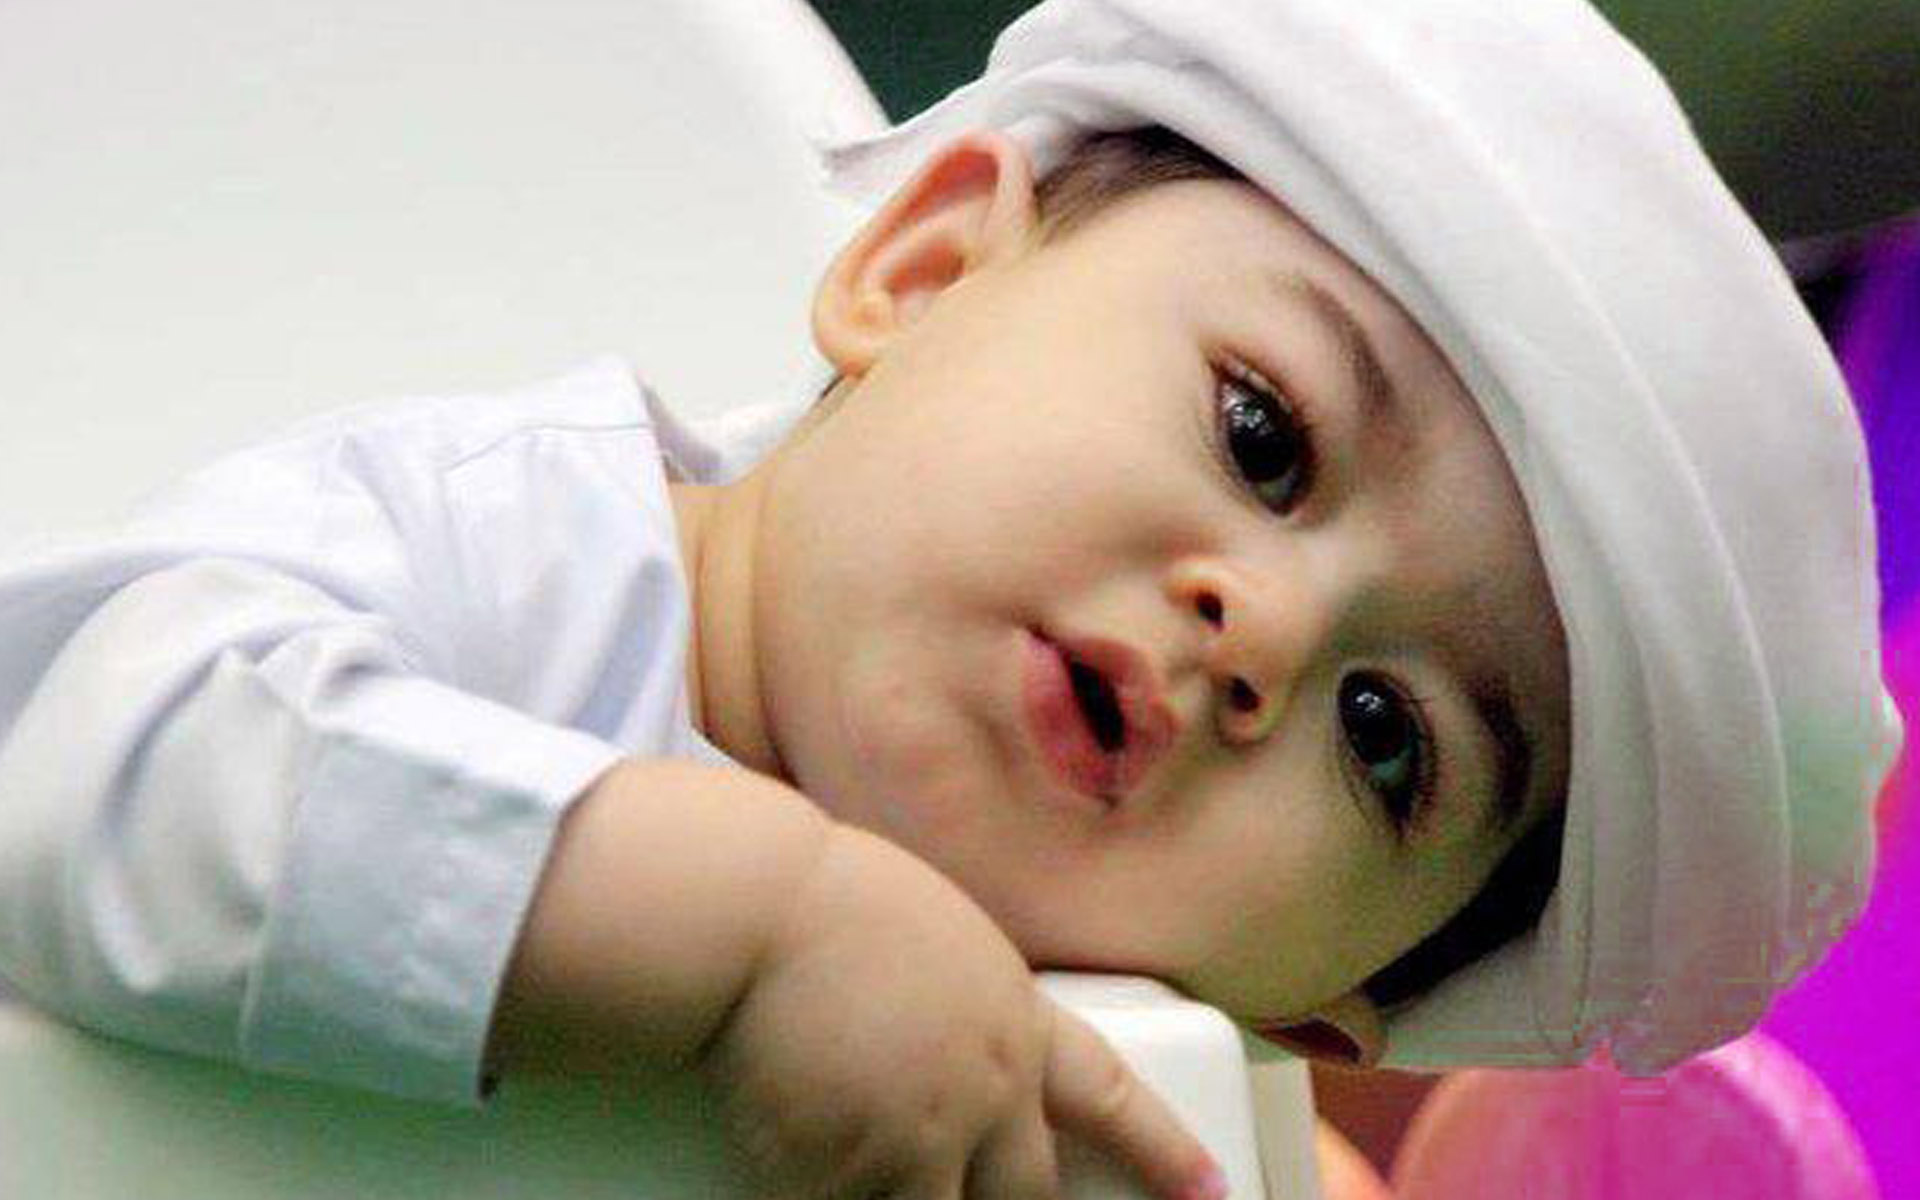 FunMozar Cute Baby Boy Wallpapers 1920x1200